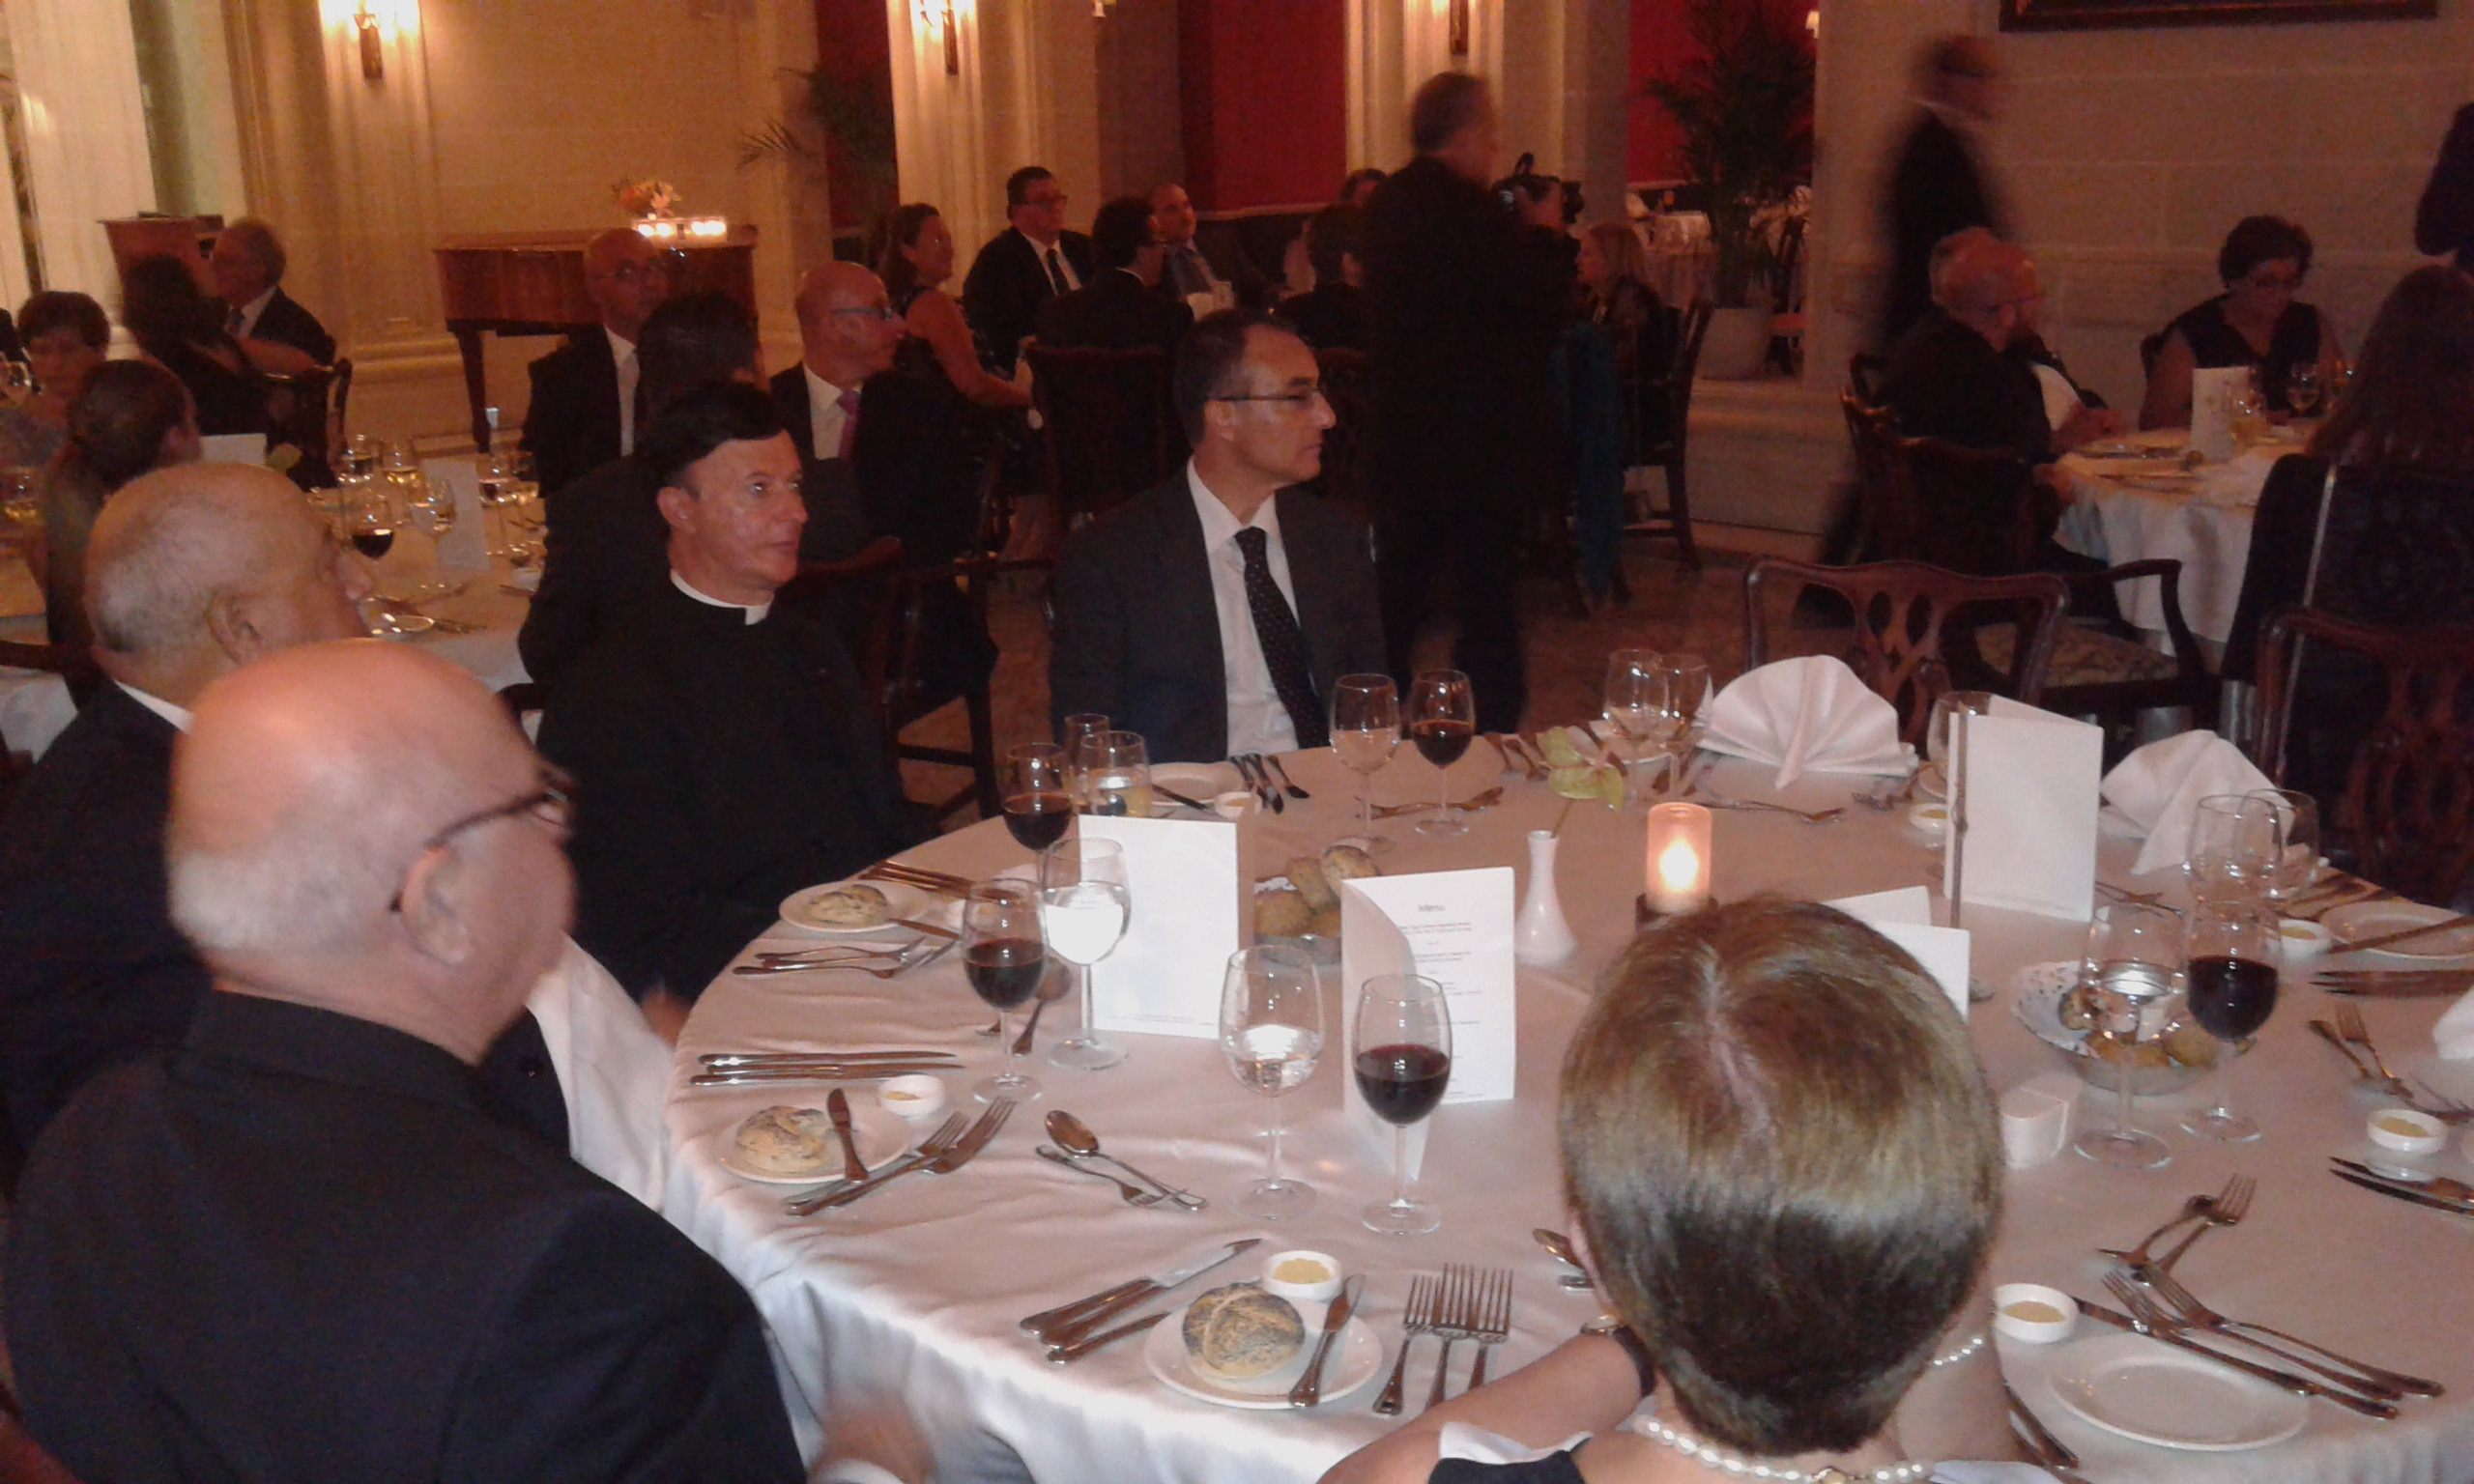 Members of the Orders and some prospective members during dinner